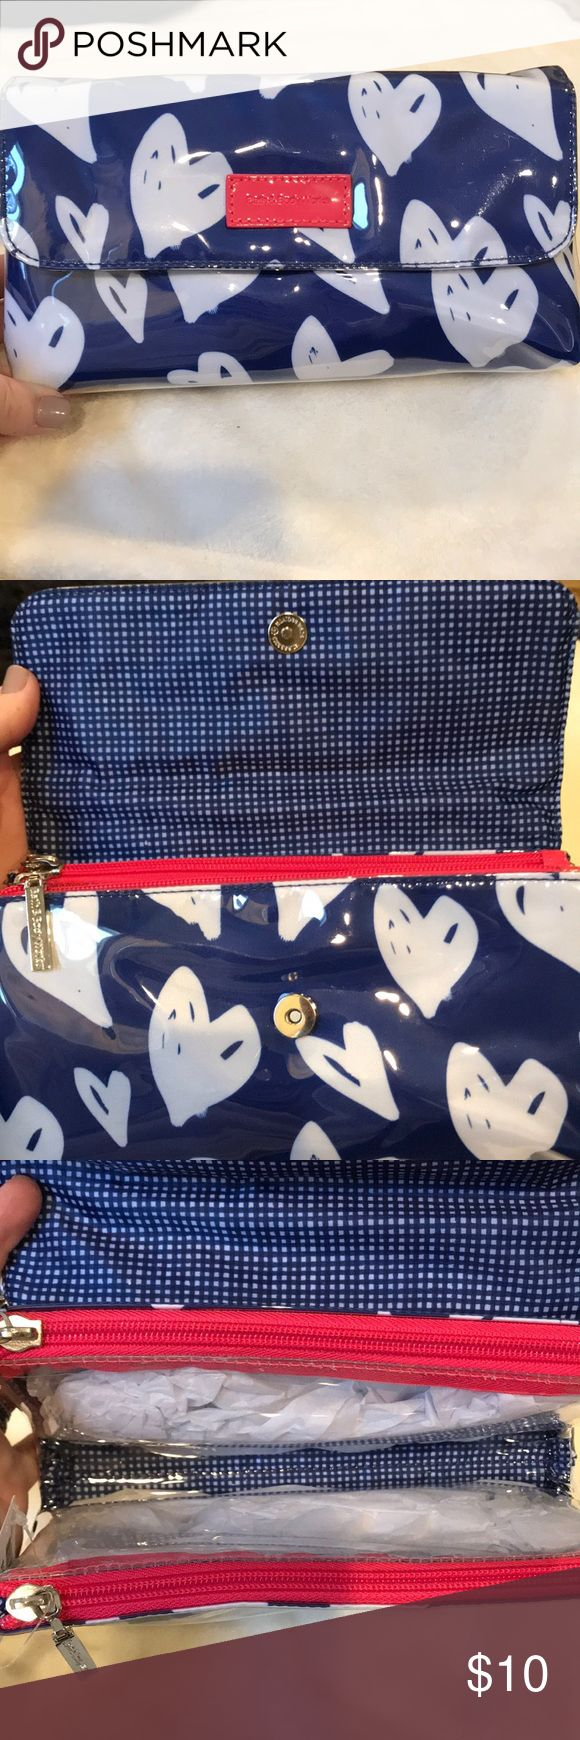 Bath & Body Works Cosmetic Case 🔹NWT 🔹Bath & Body Works plastic cosmetic bag 🔹Fold over snap closure, exterior  🔹Two zipper pouches, interior  🔹Exterior: Royal blue background with white hearts and a pink logo 🔹Interior: Blue and white gingham with clear pouches (pink zippers) 🔹🚭 Bath & Body Works Bags Cosmetic Bags & Cases